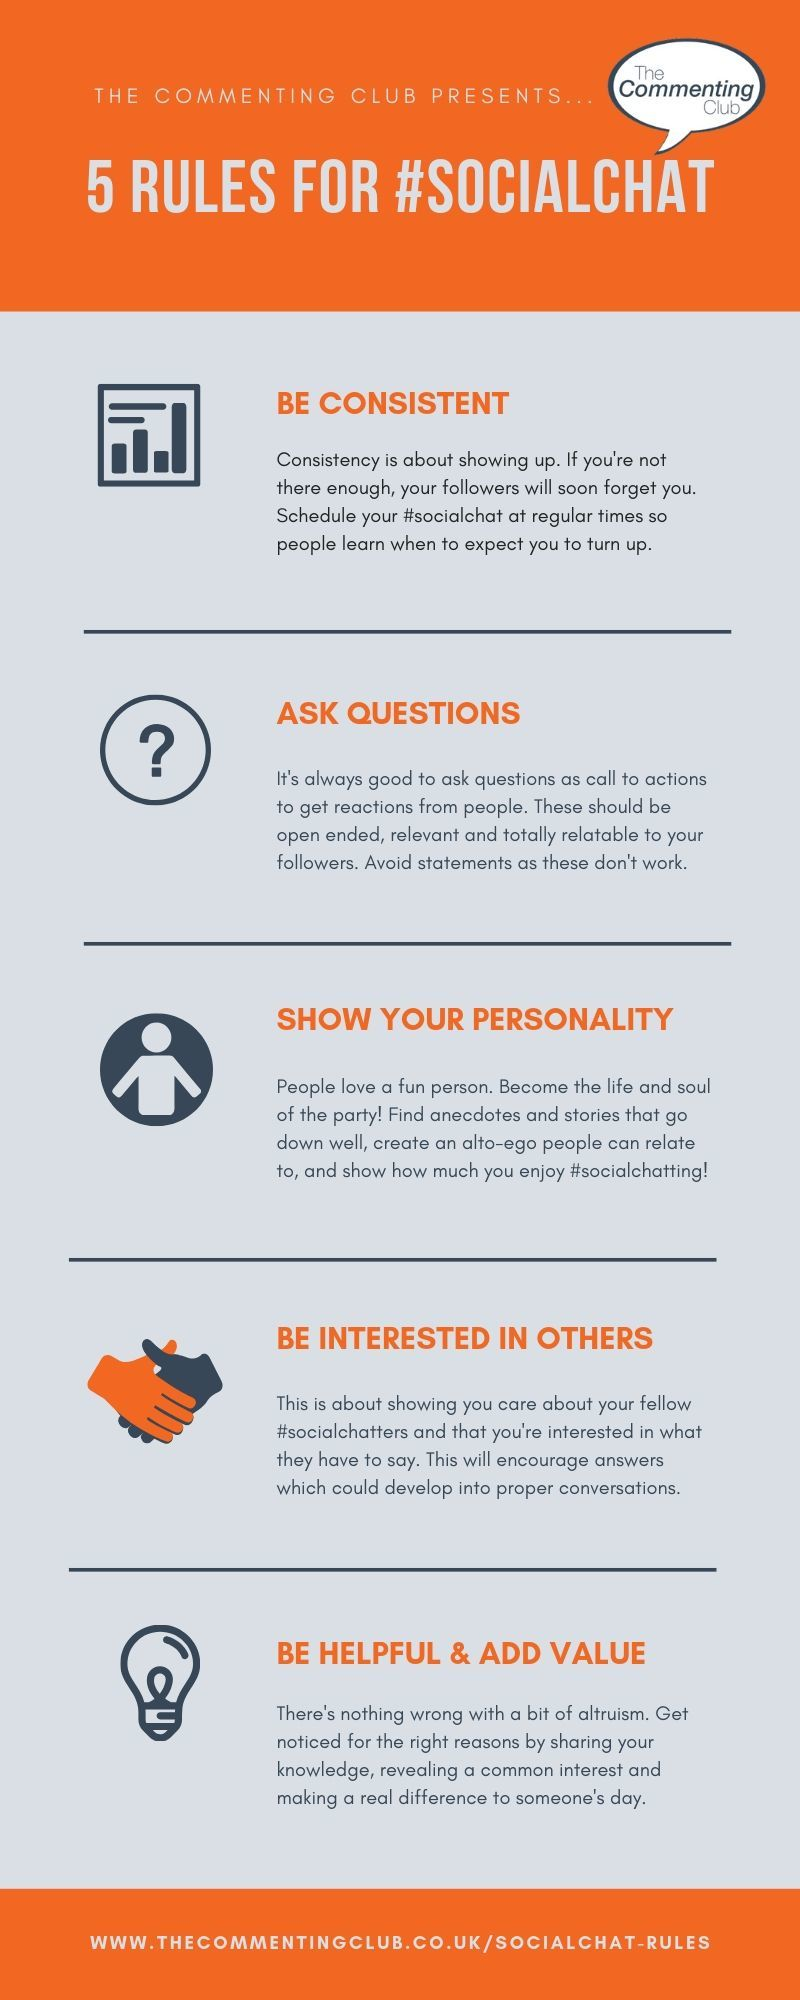 5 rules for socialchat